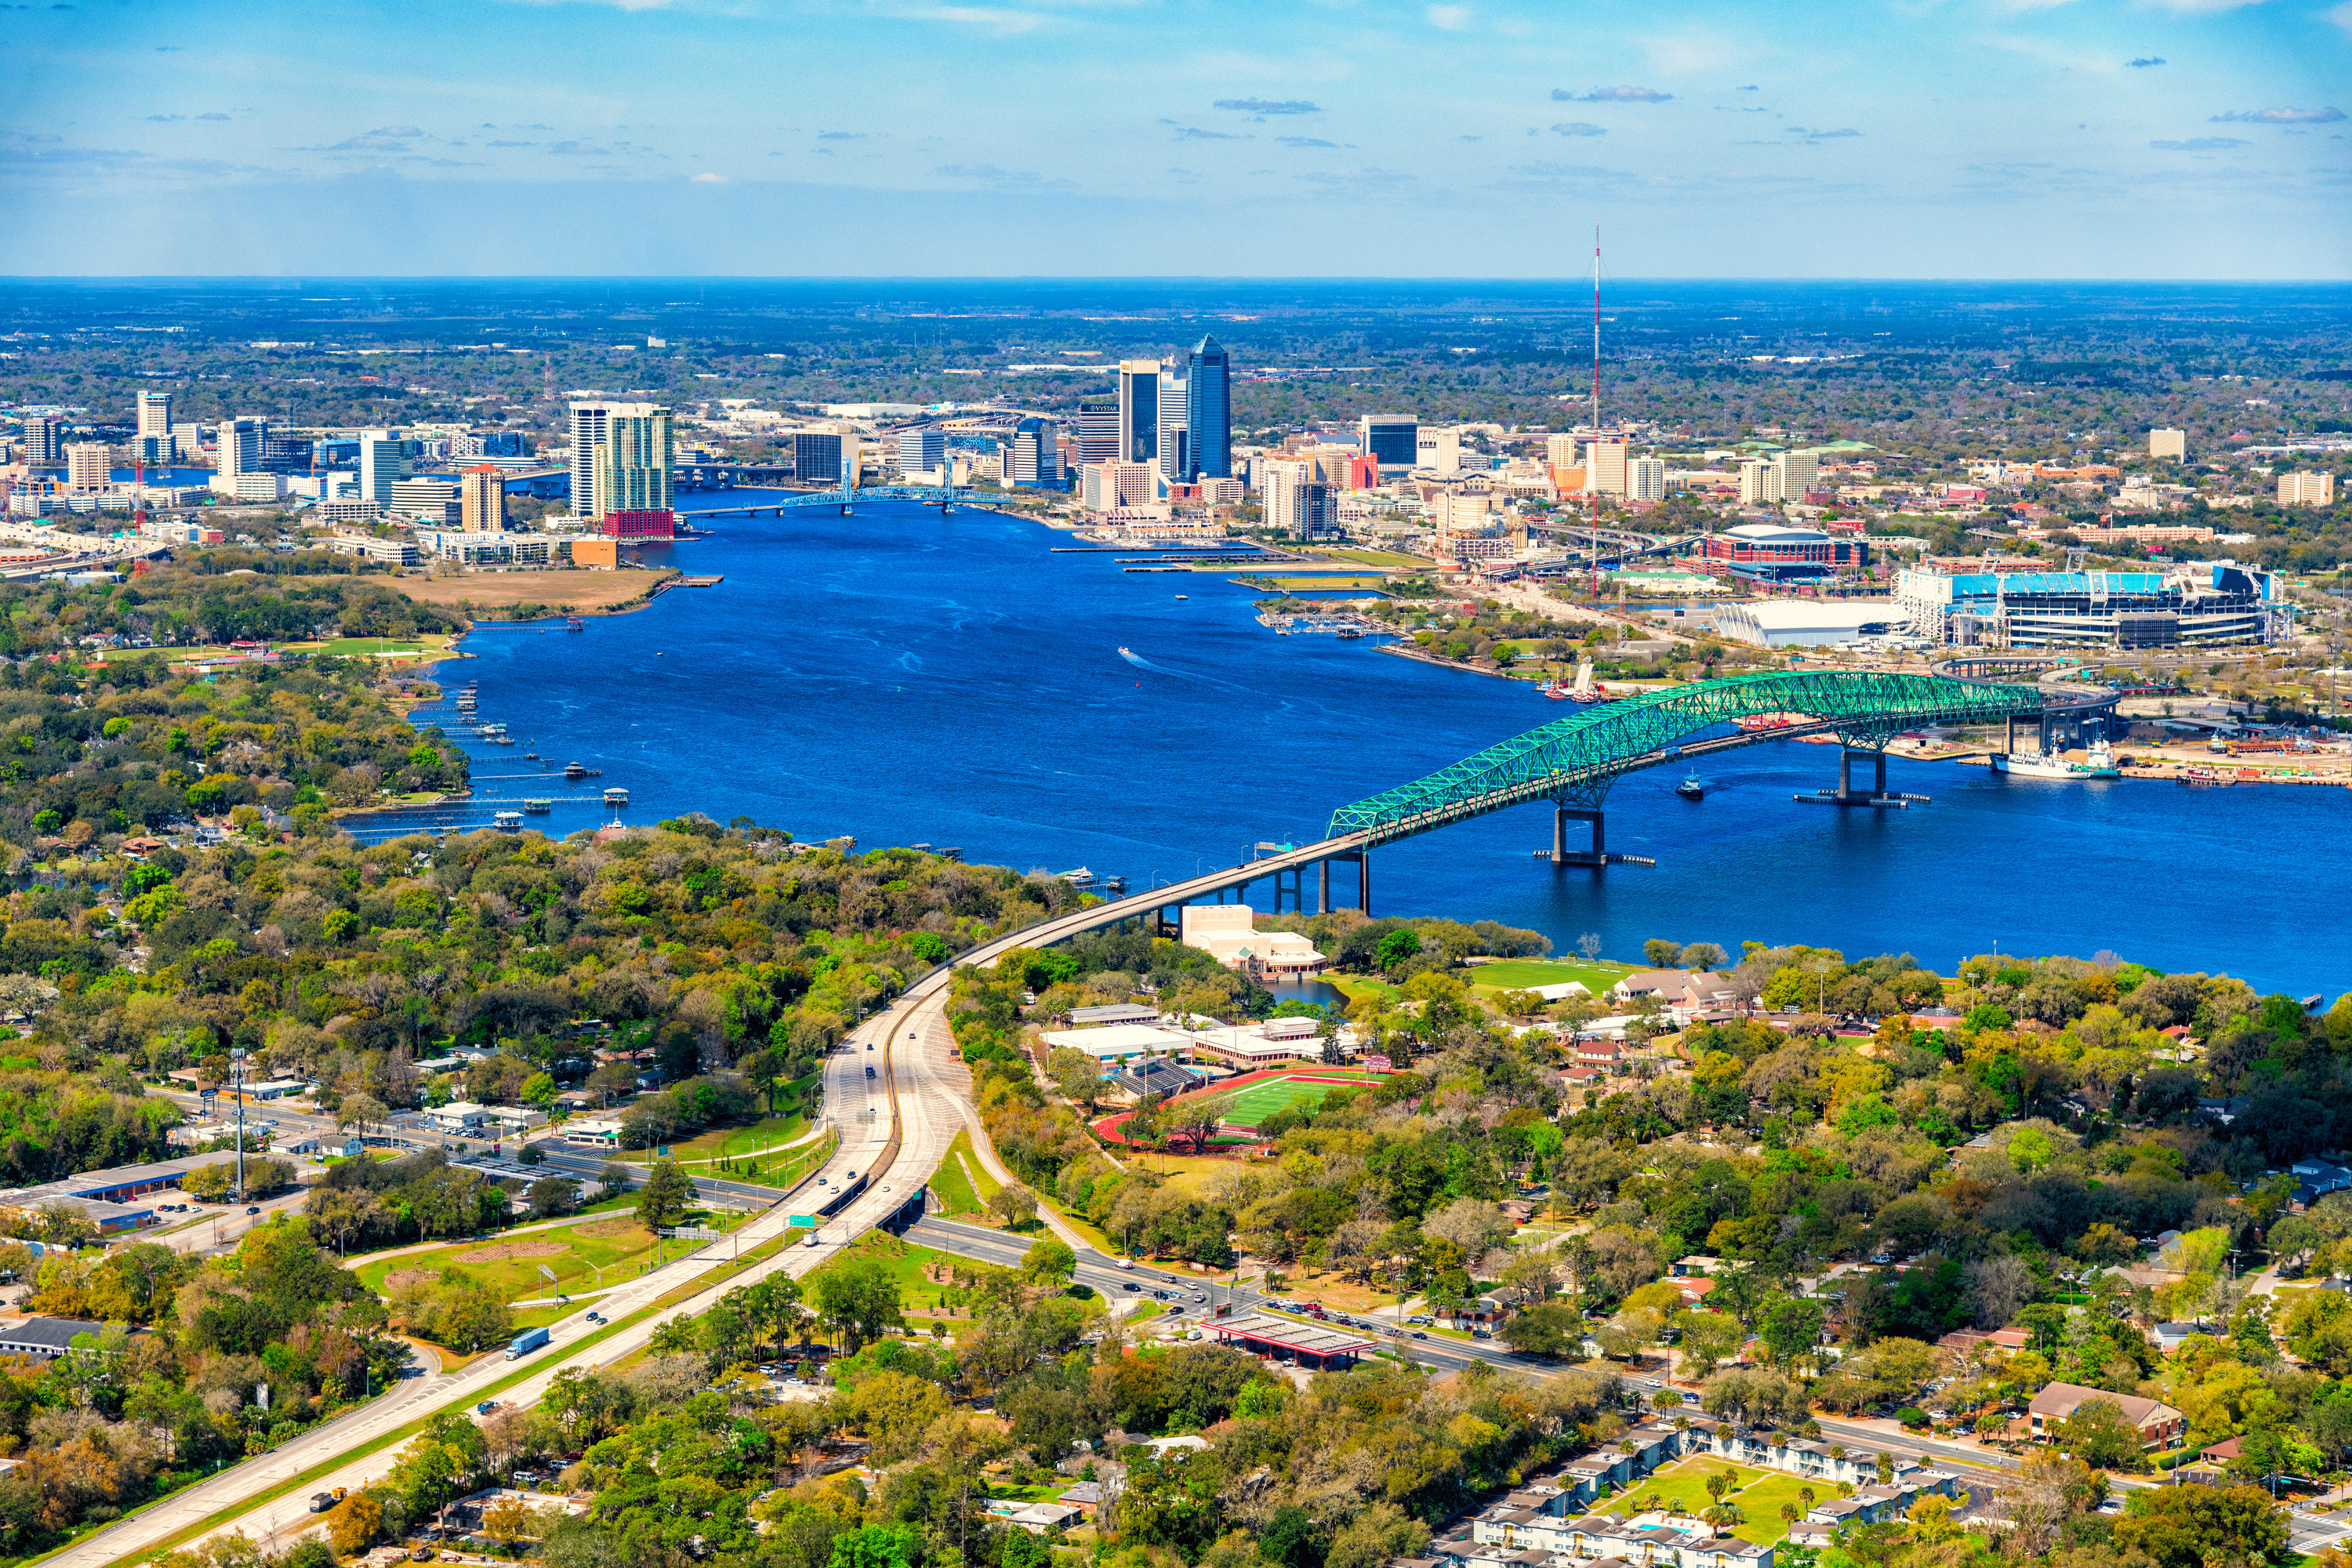 Aerial view of the city of Jacksonville and the river